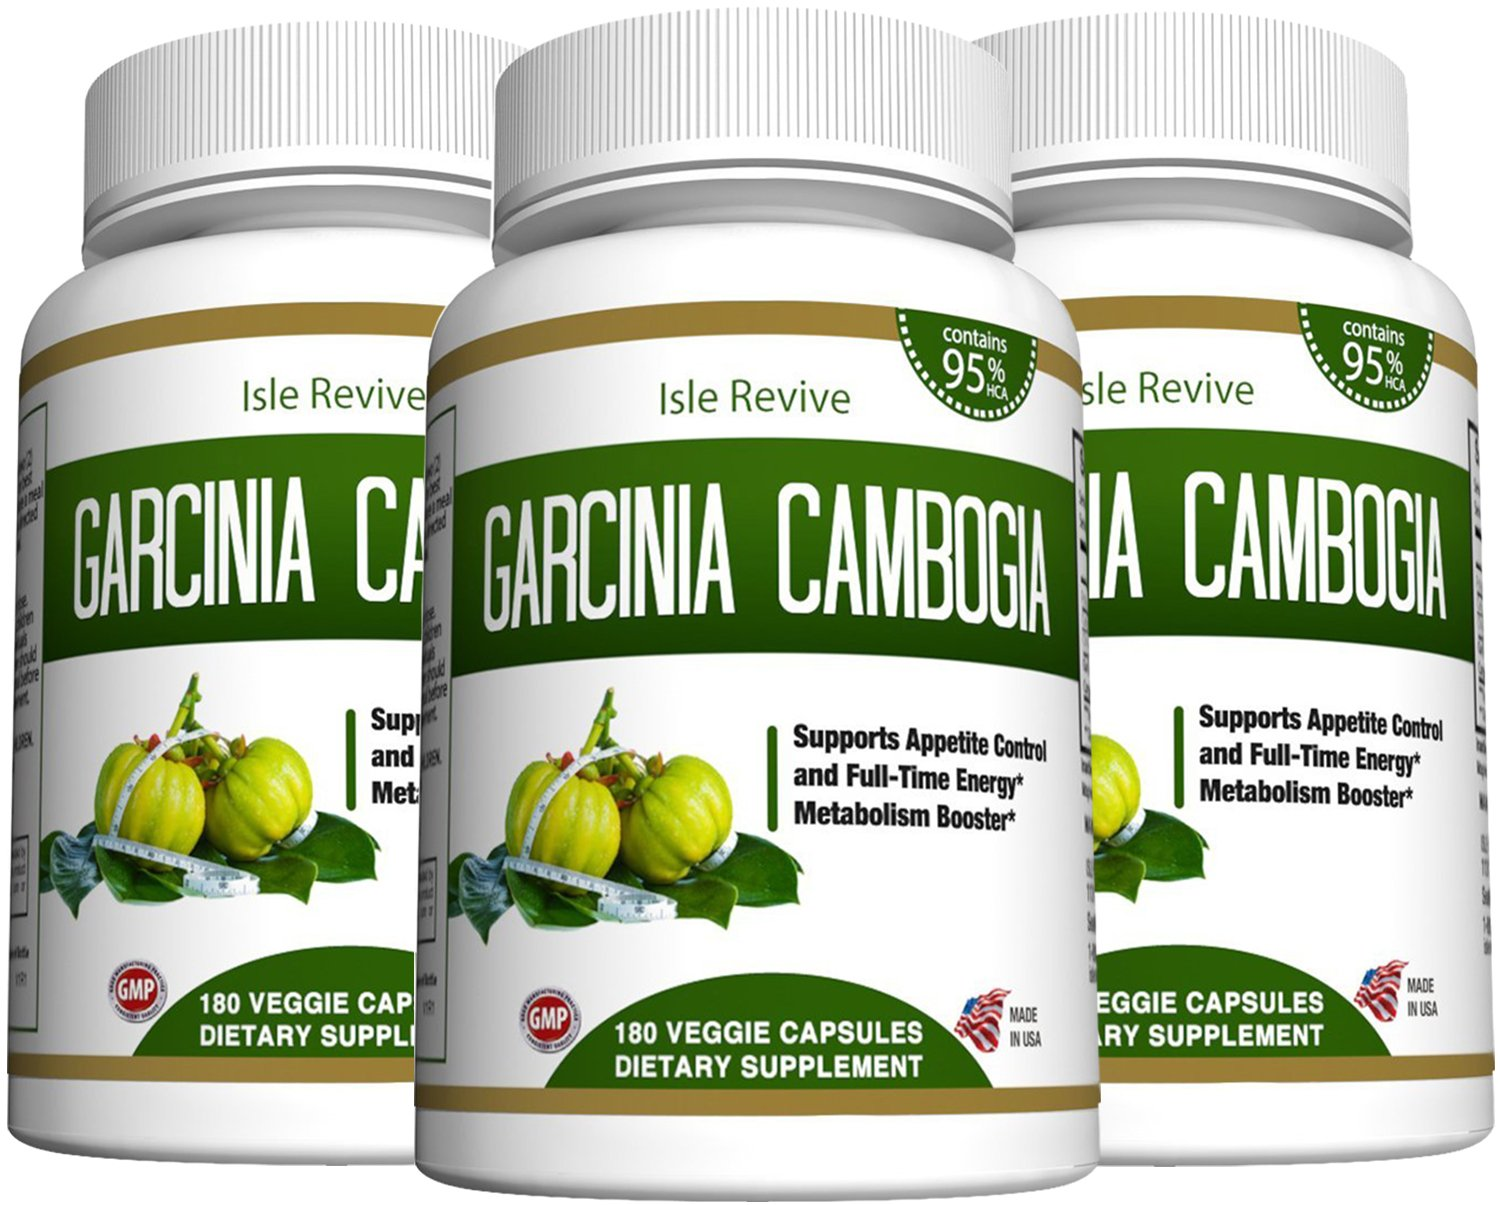 Garcinia Cambogia Weight Loss Supplement - Carb Blocker 95% HCA Pure Extract Fat Burner Diet Pills Appetite Suppressant Energy Booster for Health and Wellness Made in the USA, 3 Bottles 180 Capsules